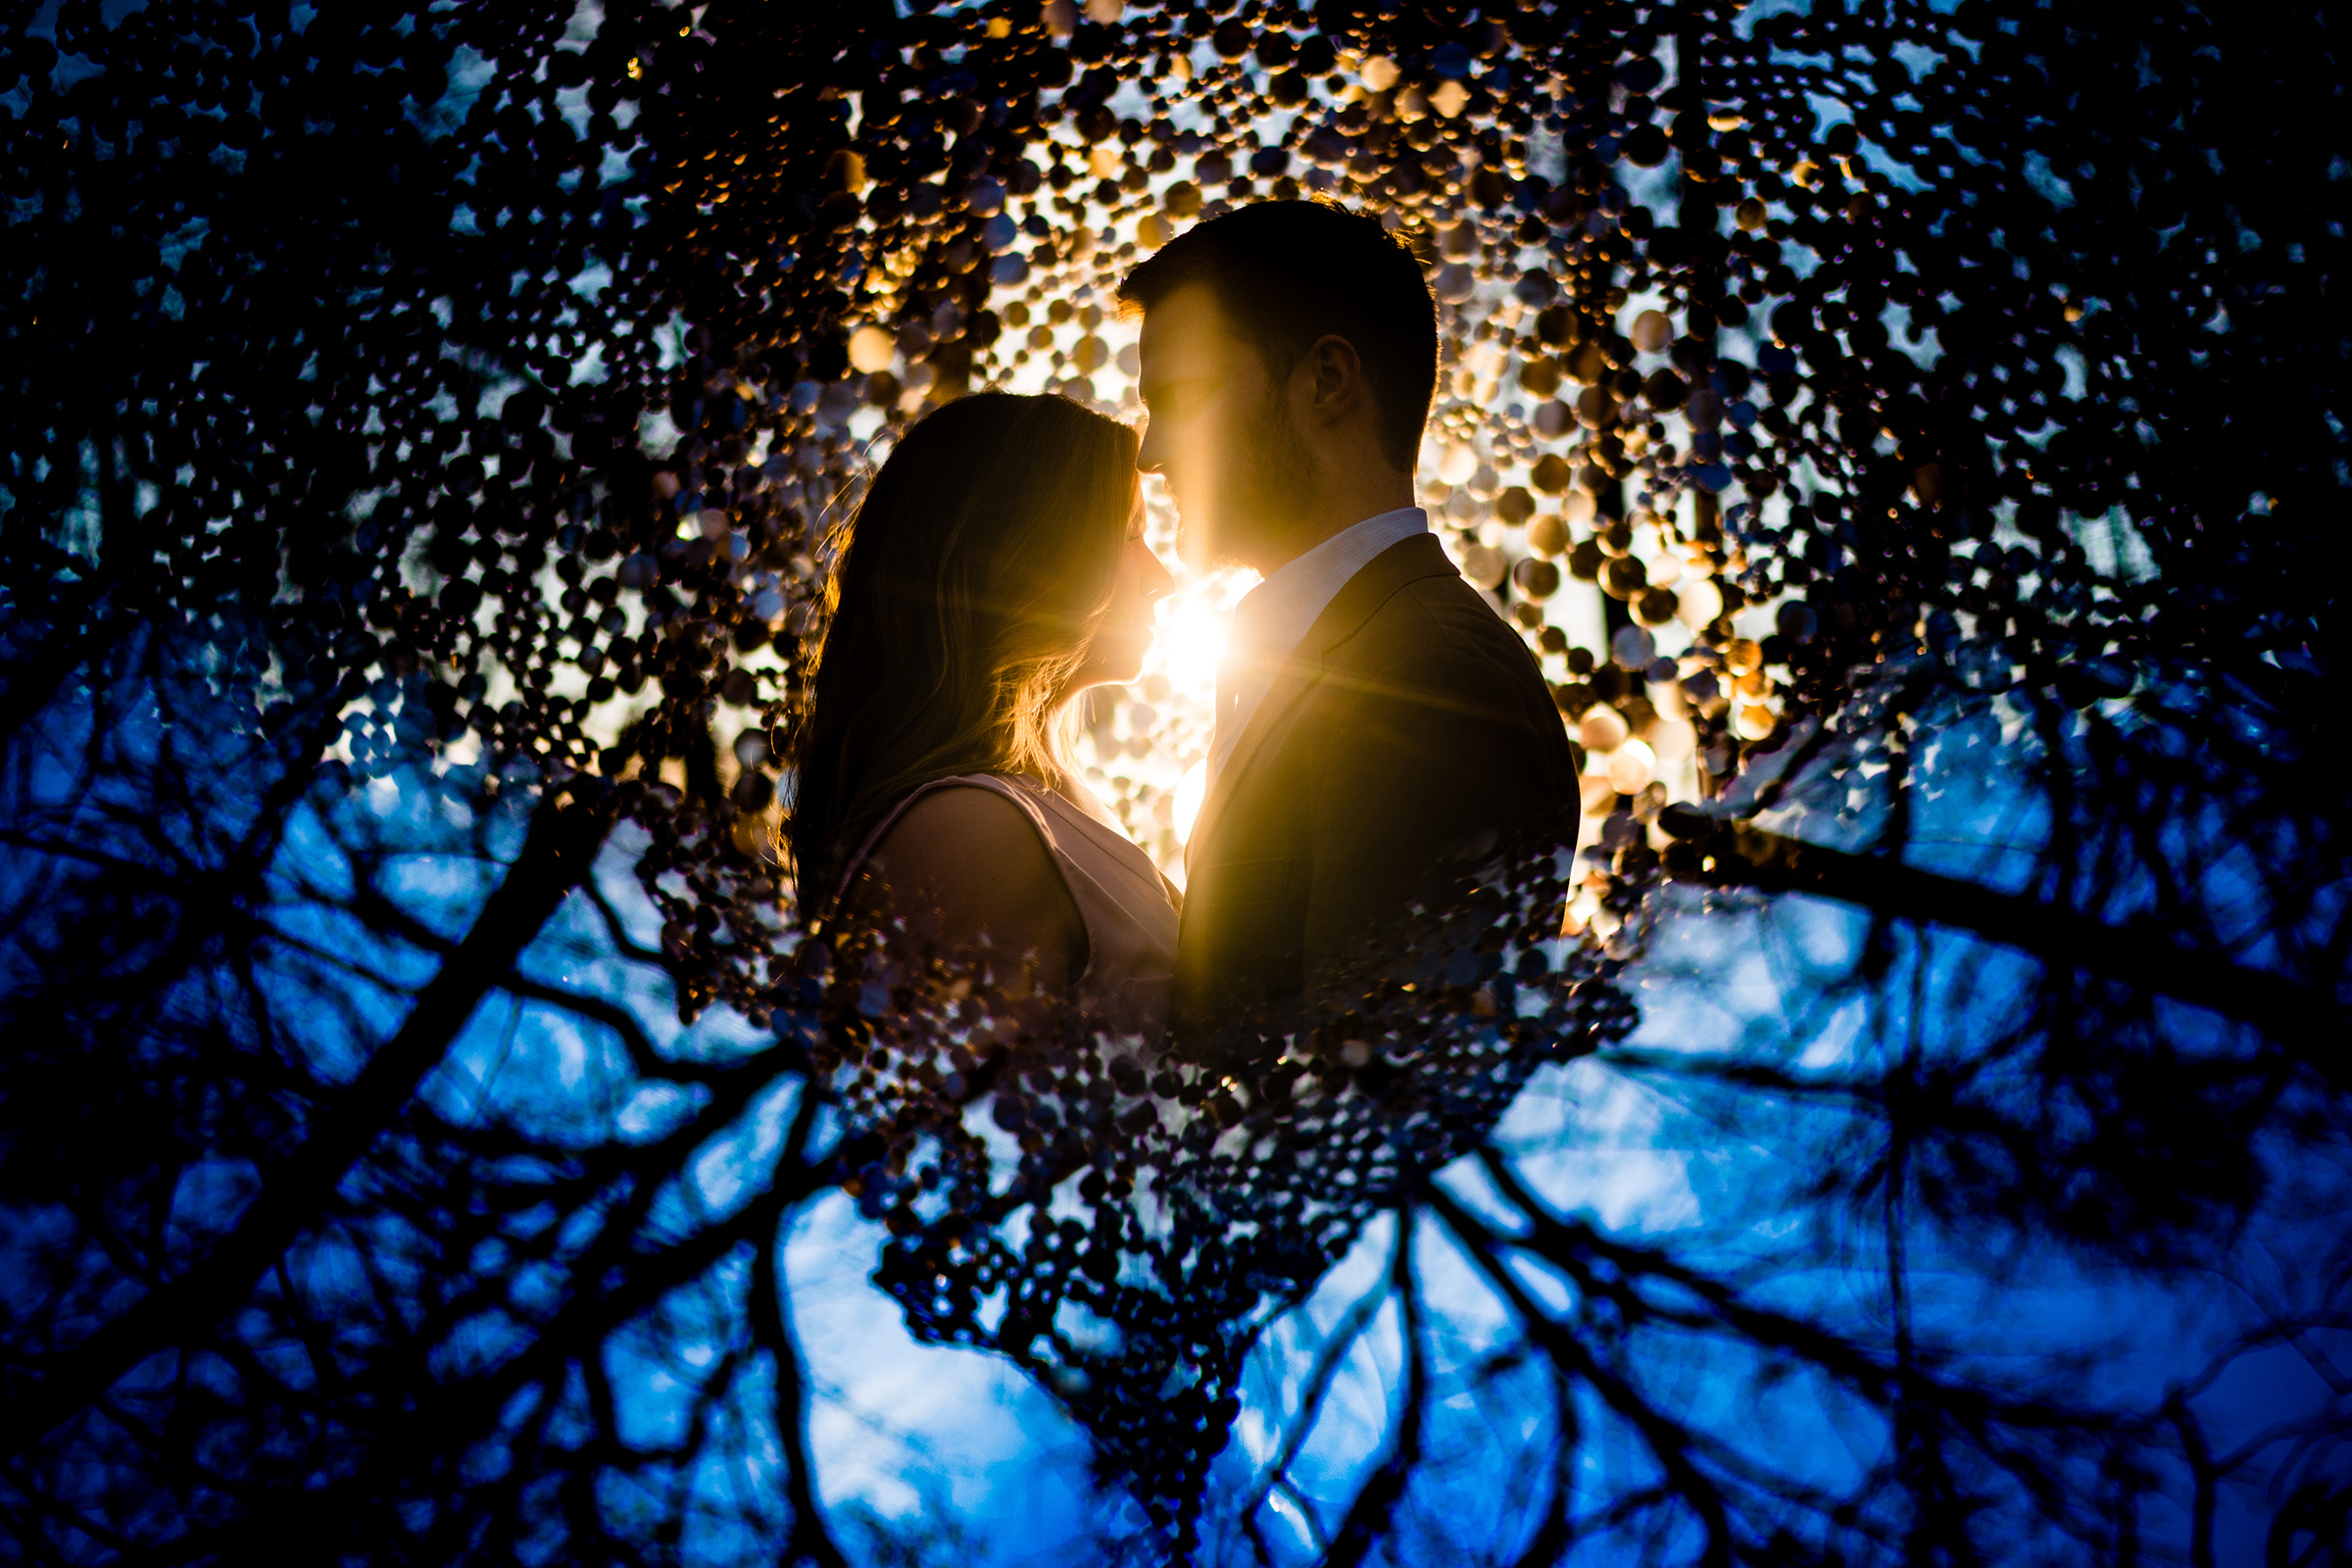 Backlit and prismed photo of couple against trees and art installation - photo by Vinson Images